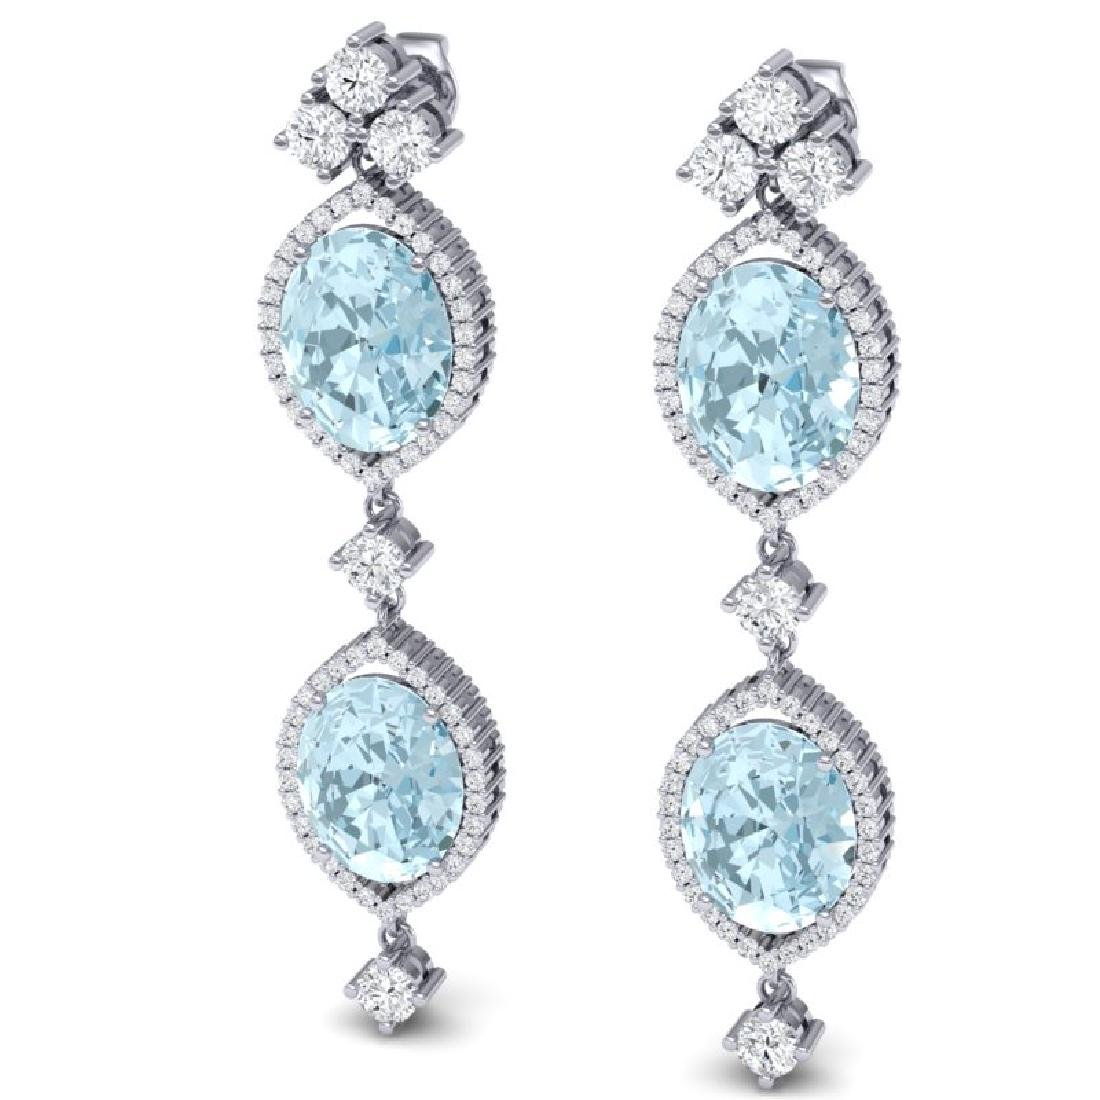 16.41 CTW Royalty Sky Topaz & VS Diamond Earrings 18K - 2